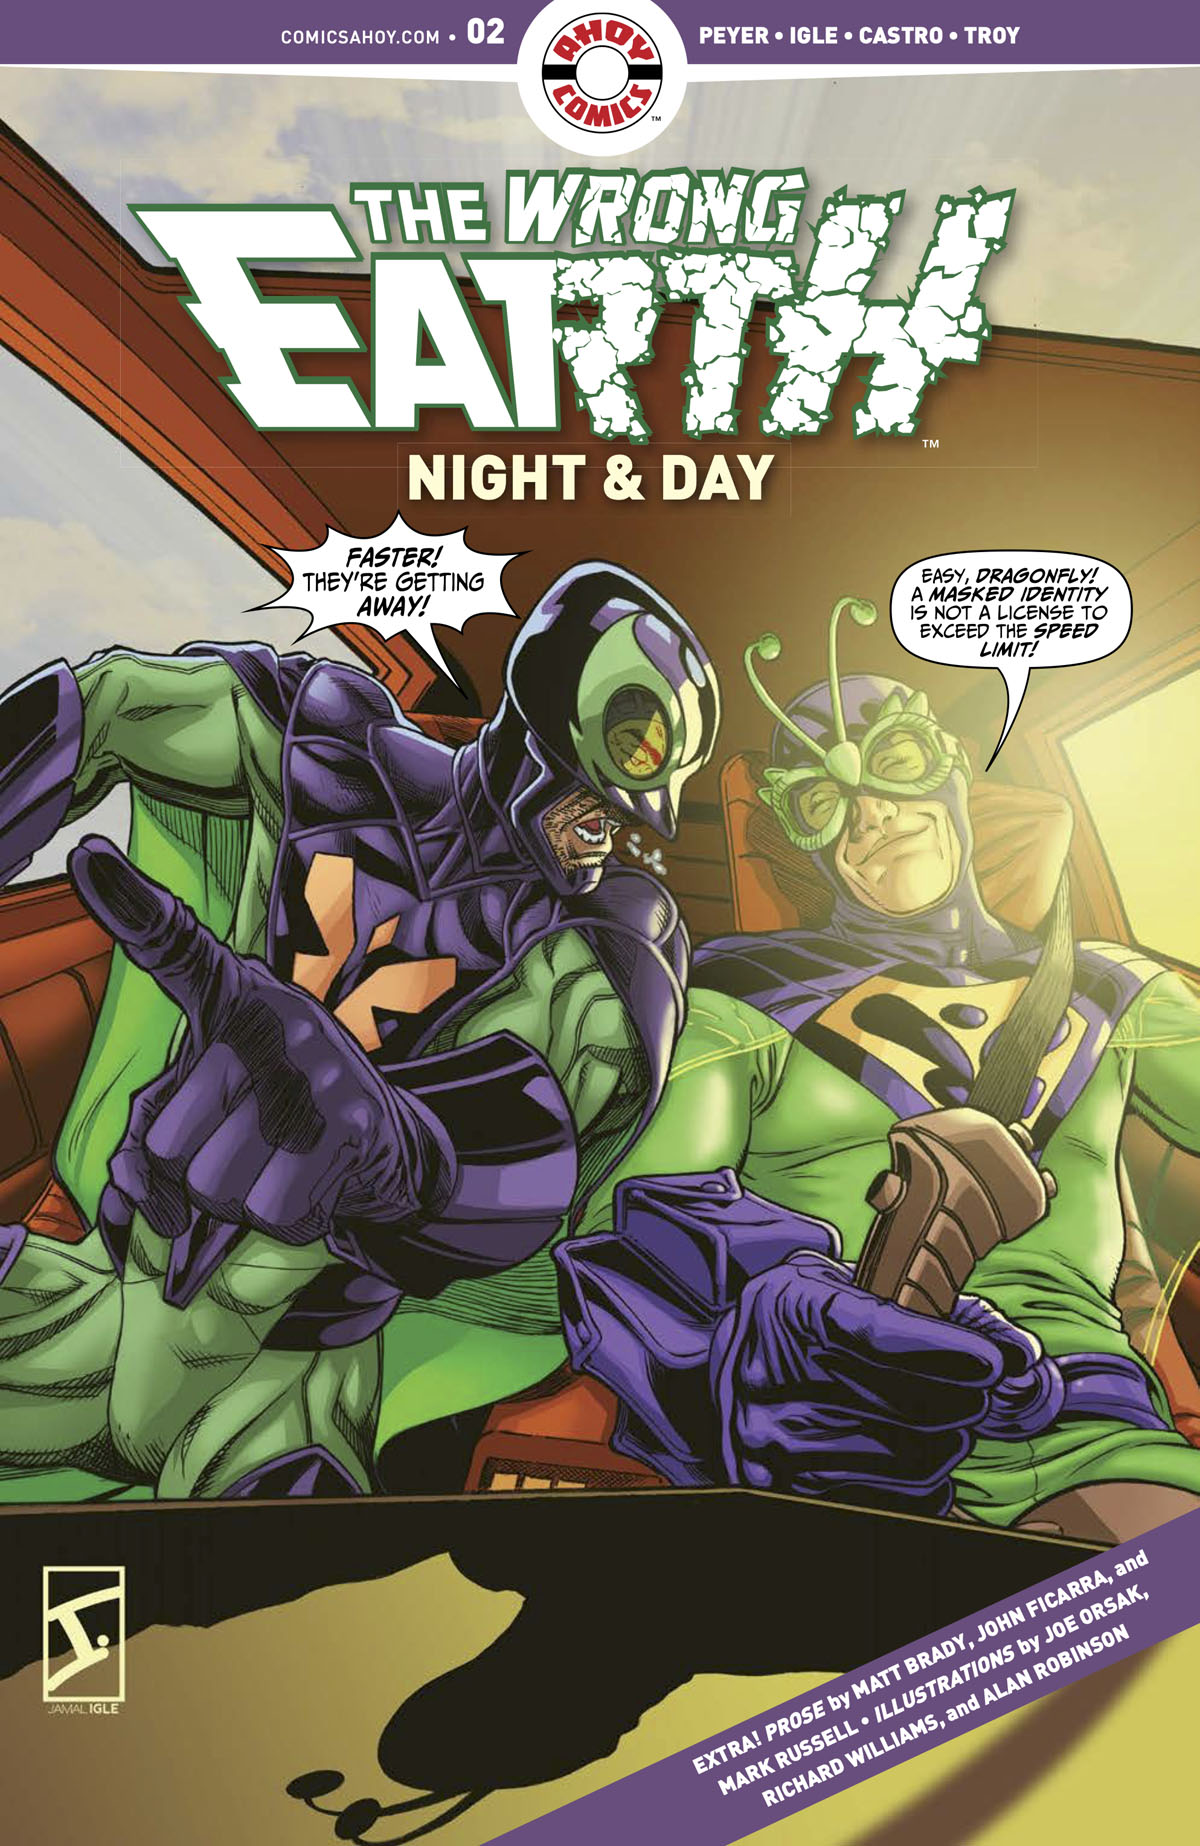 The Wrong Earth: Night & Day #2 cover